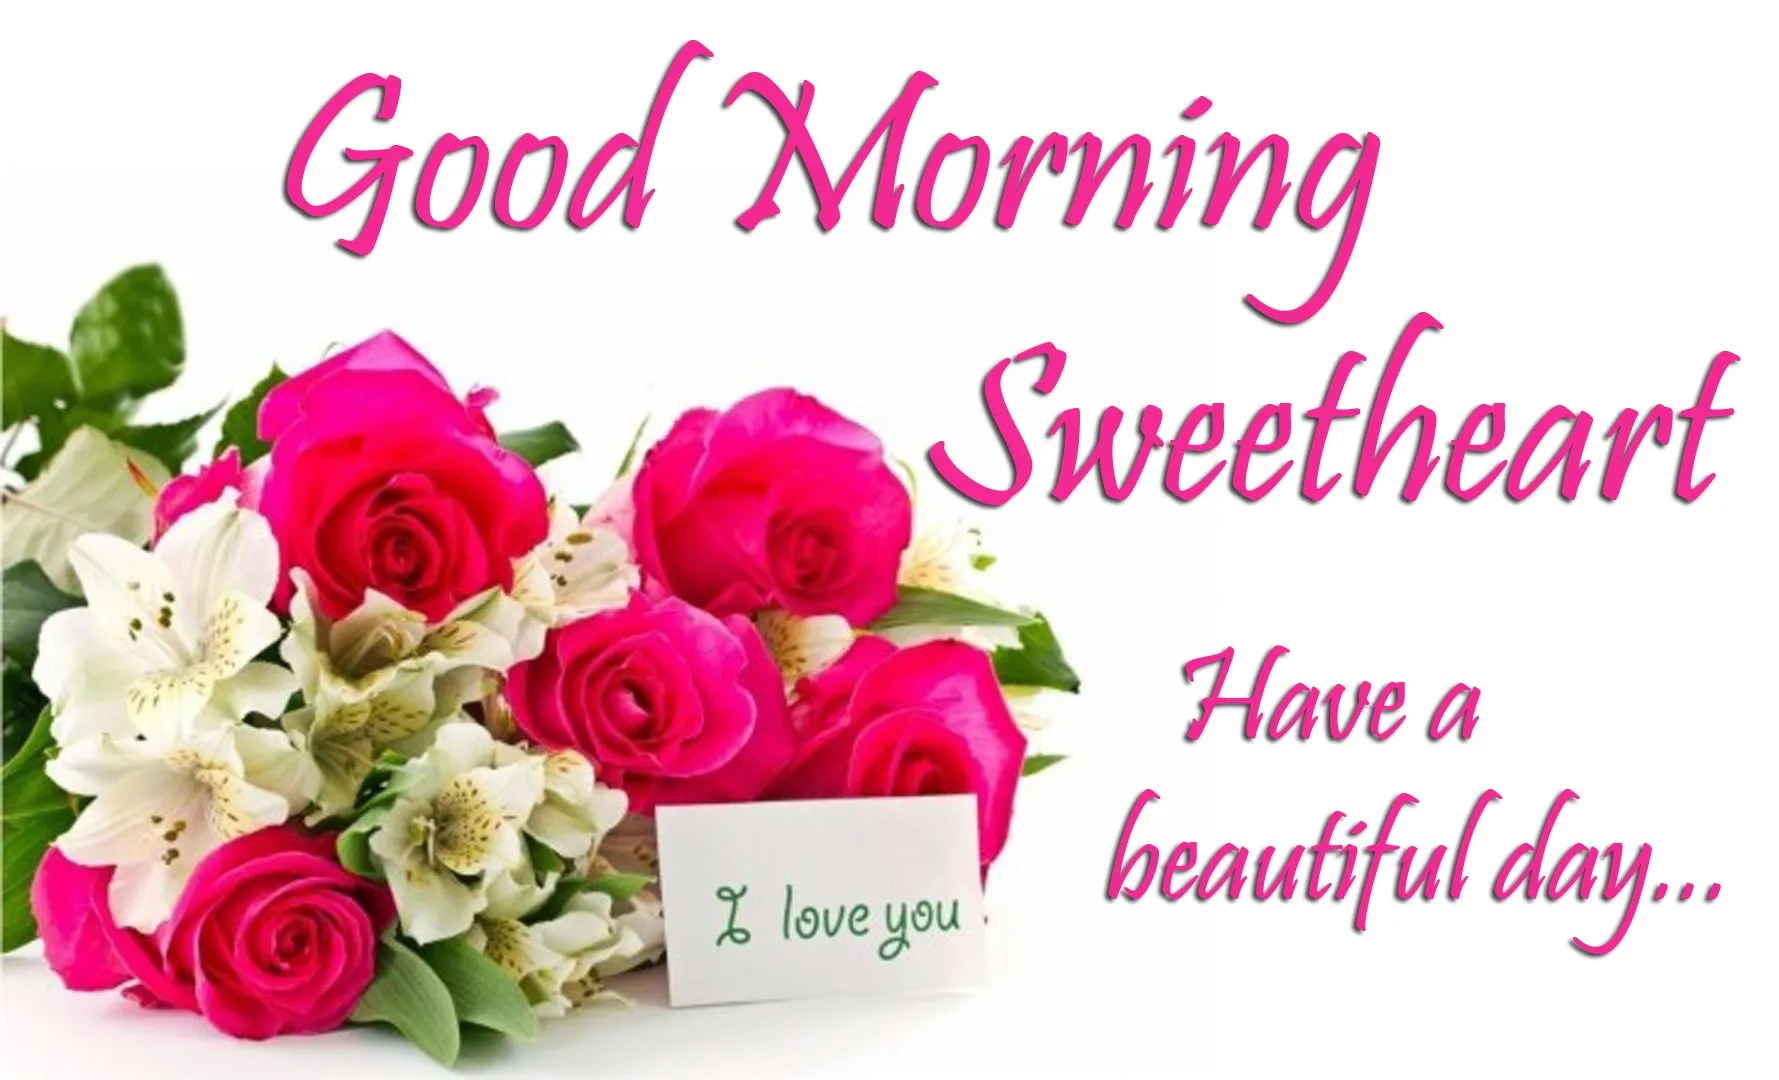 Lovely Good Morning Sweetheart Images Pictures Wallpapers